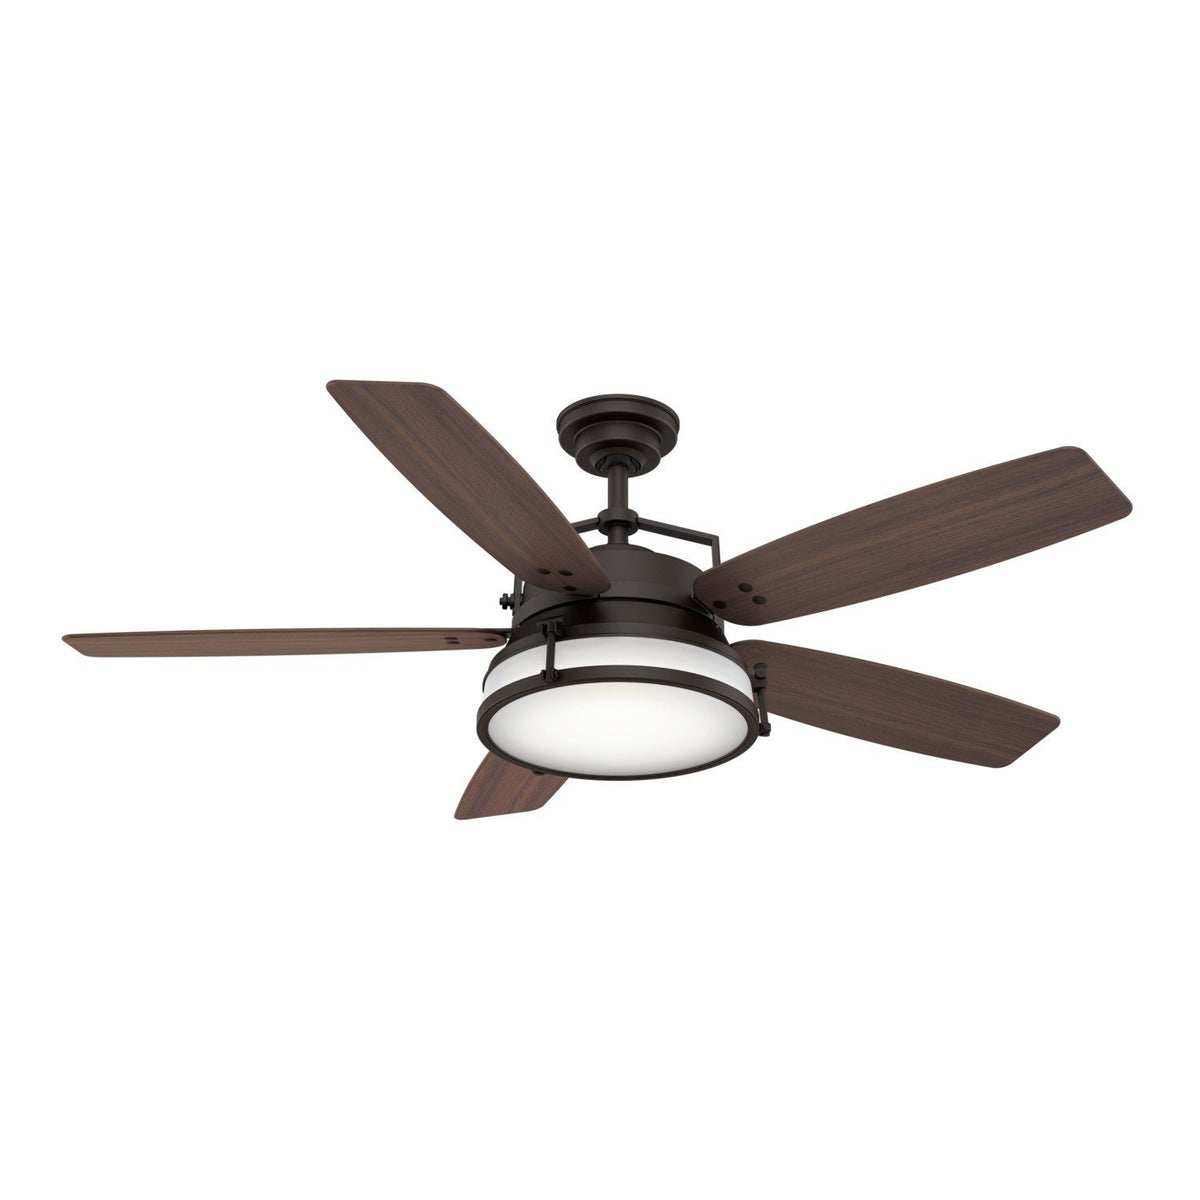 Caneel Bay Outdoor With Led Light 56 Inch U2013 Hunter Fan